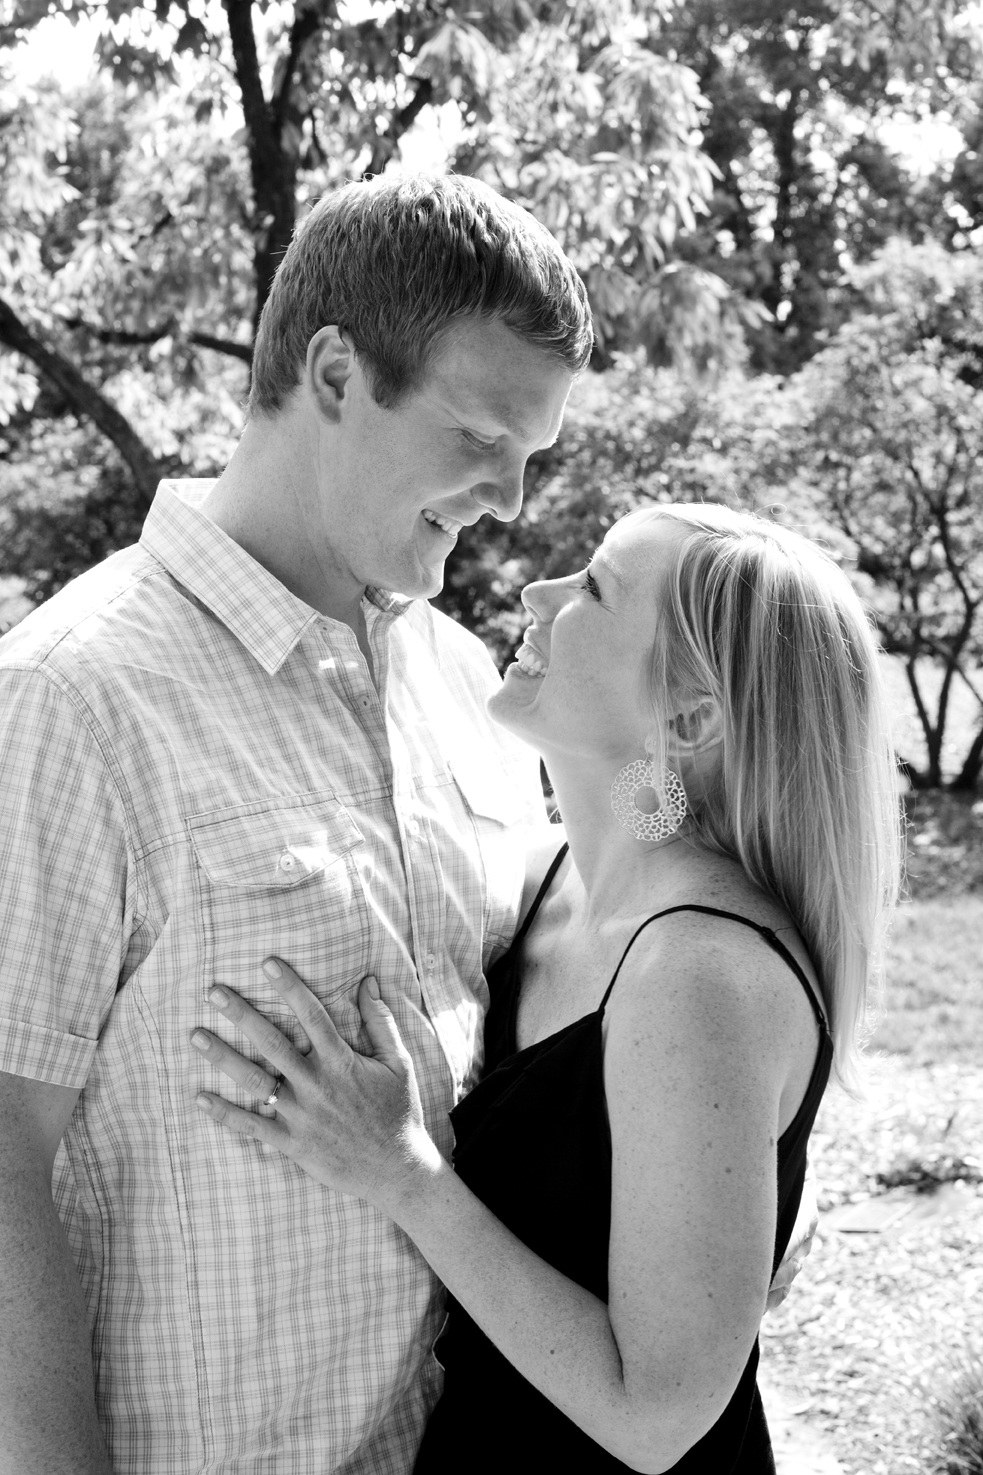 Engagement Photo Session with Mary and Dave in Lilacia Park, Lombard